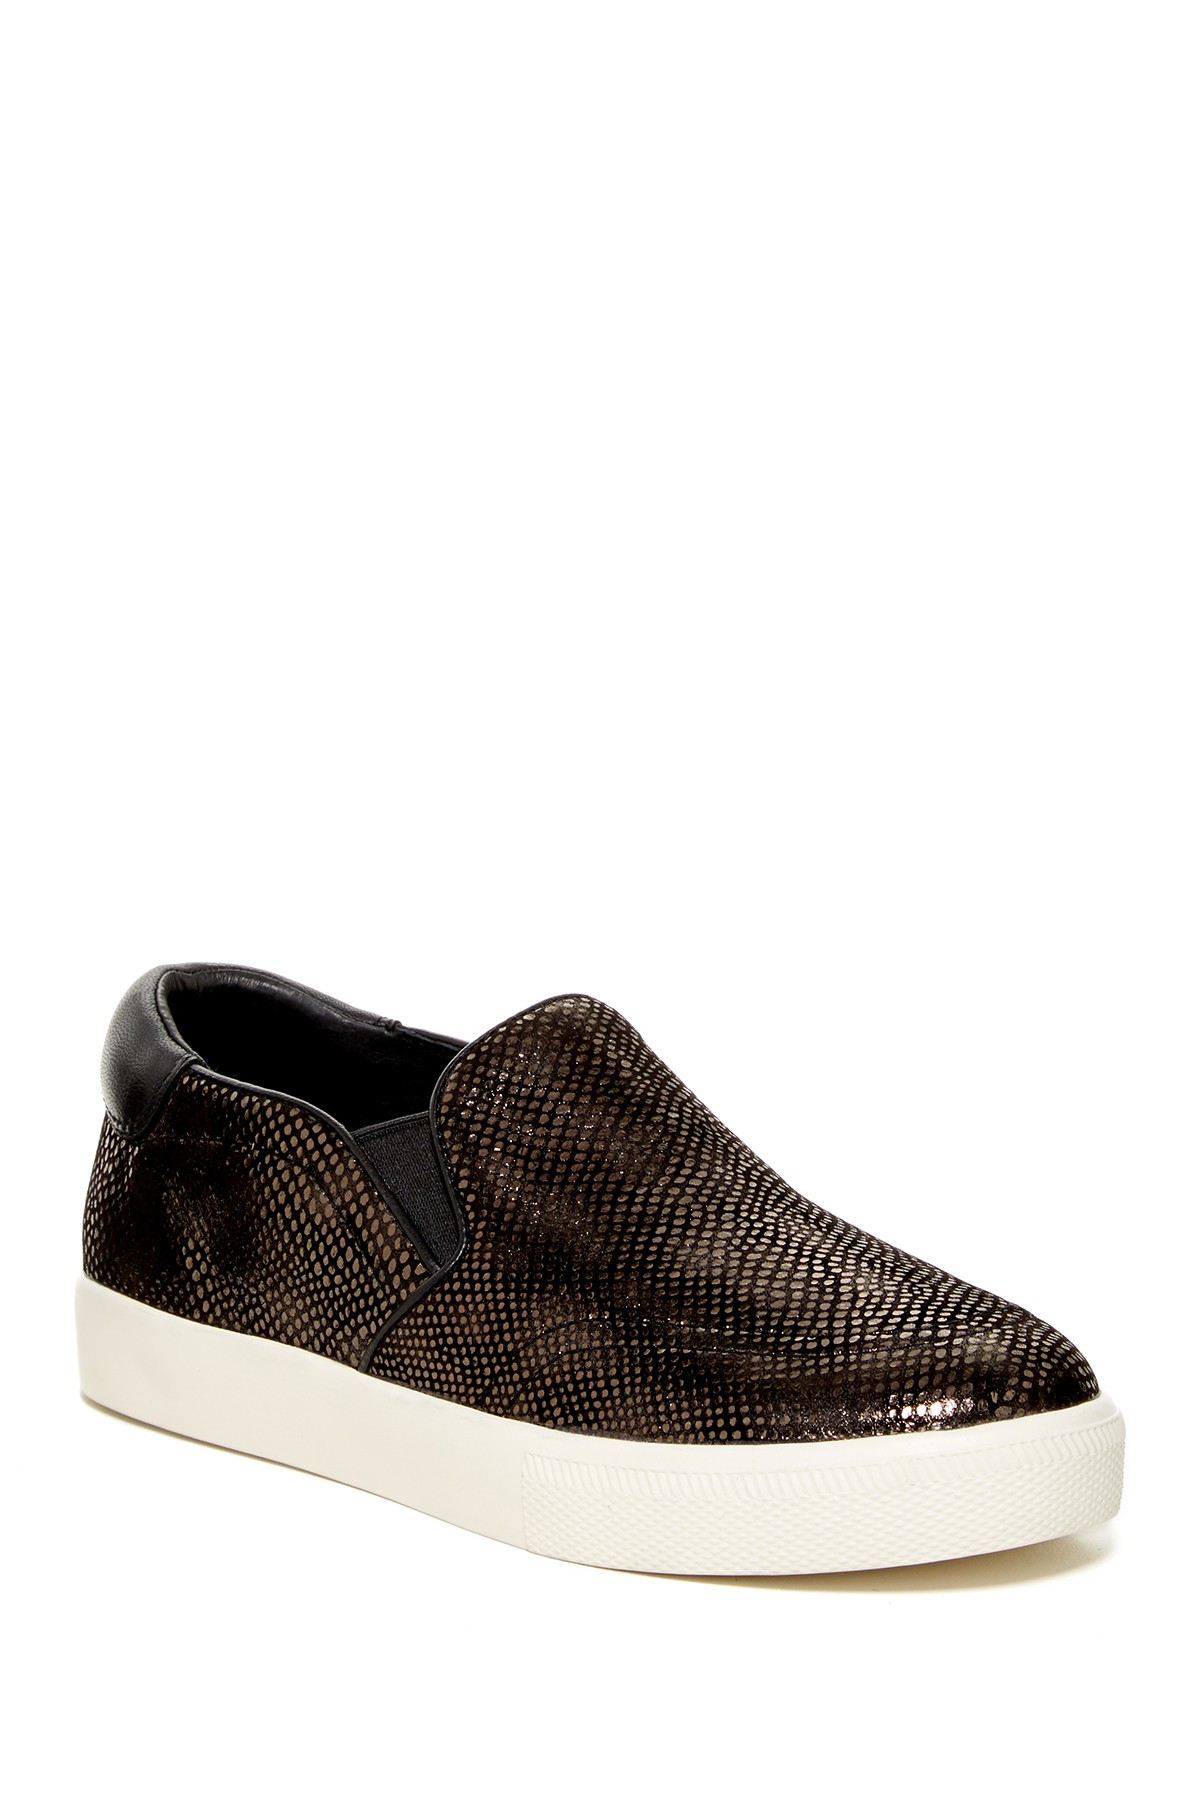 ash impuls slip on sneaker in black lyst